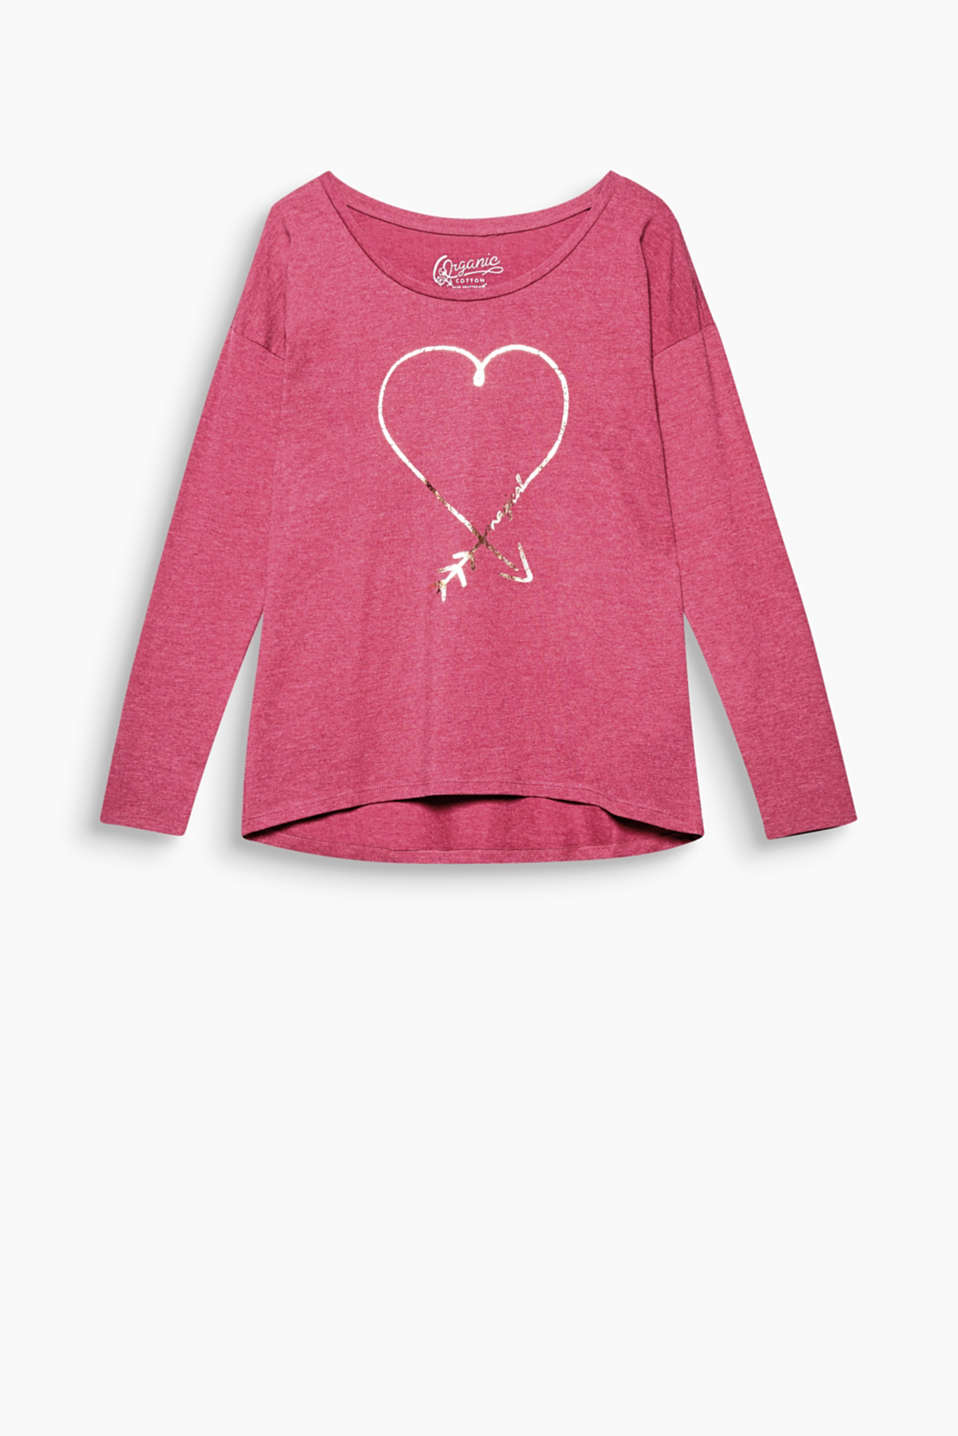 This long sleeve top in organic cotton are given a glamour kick by the glimmering print and sweet glitter elements!